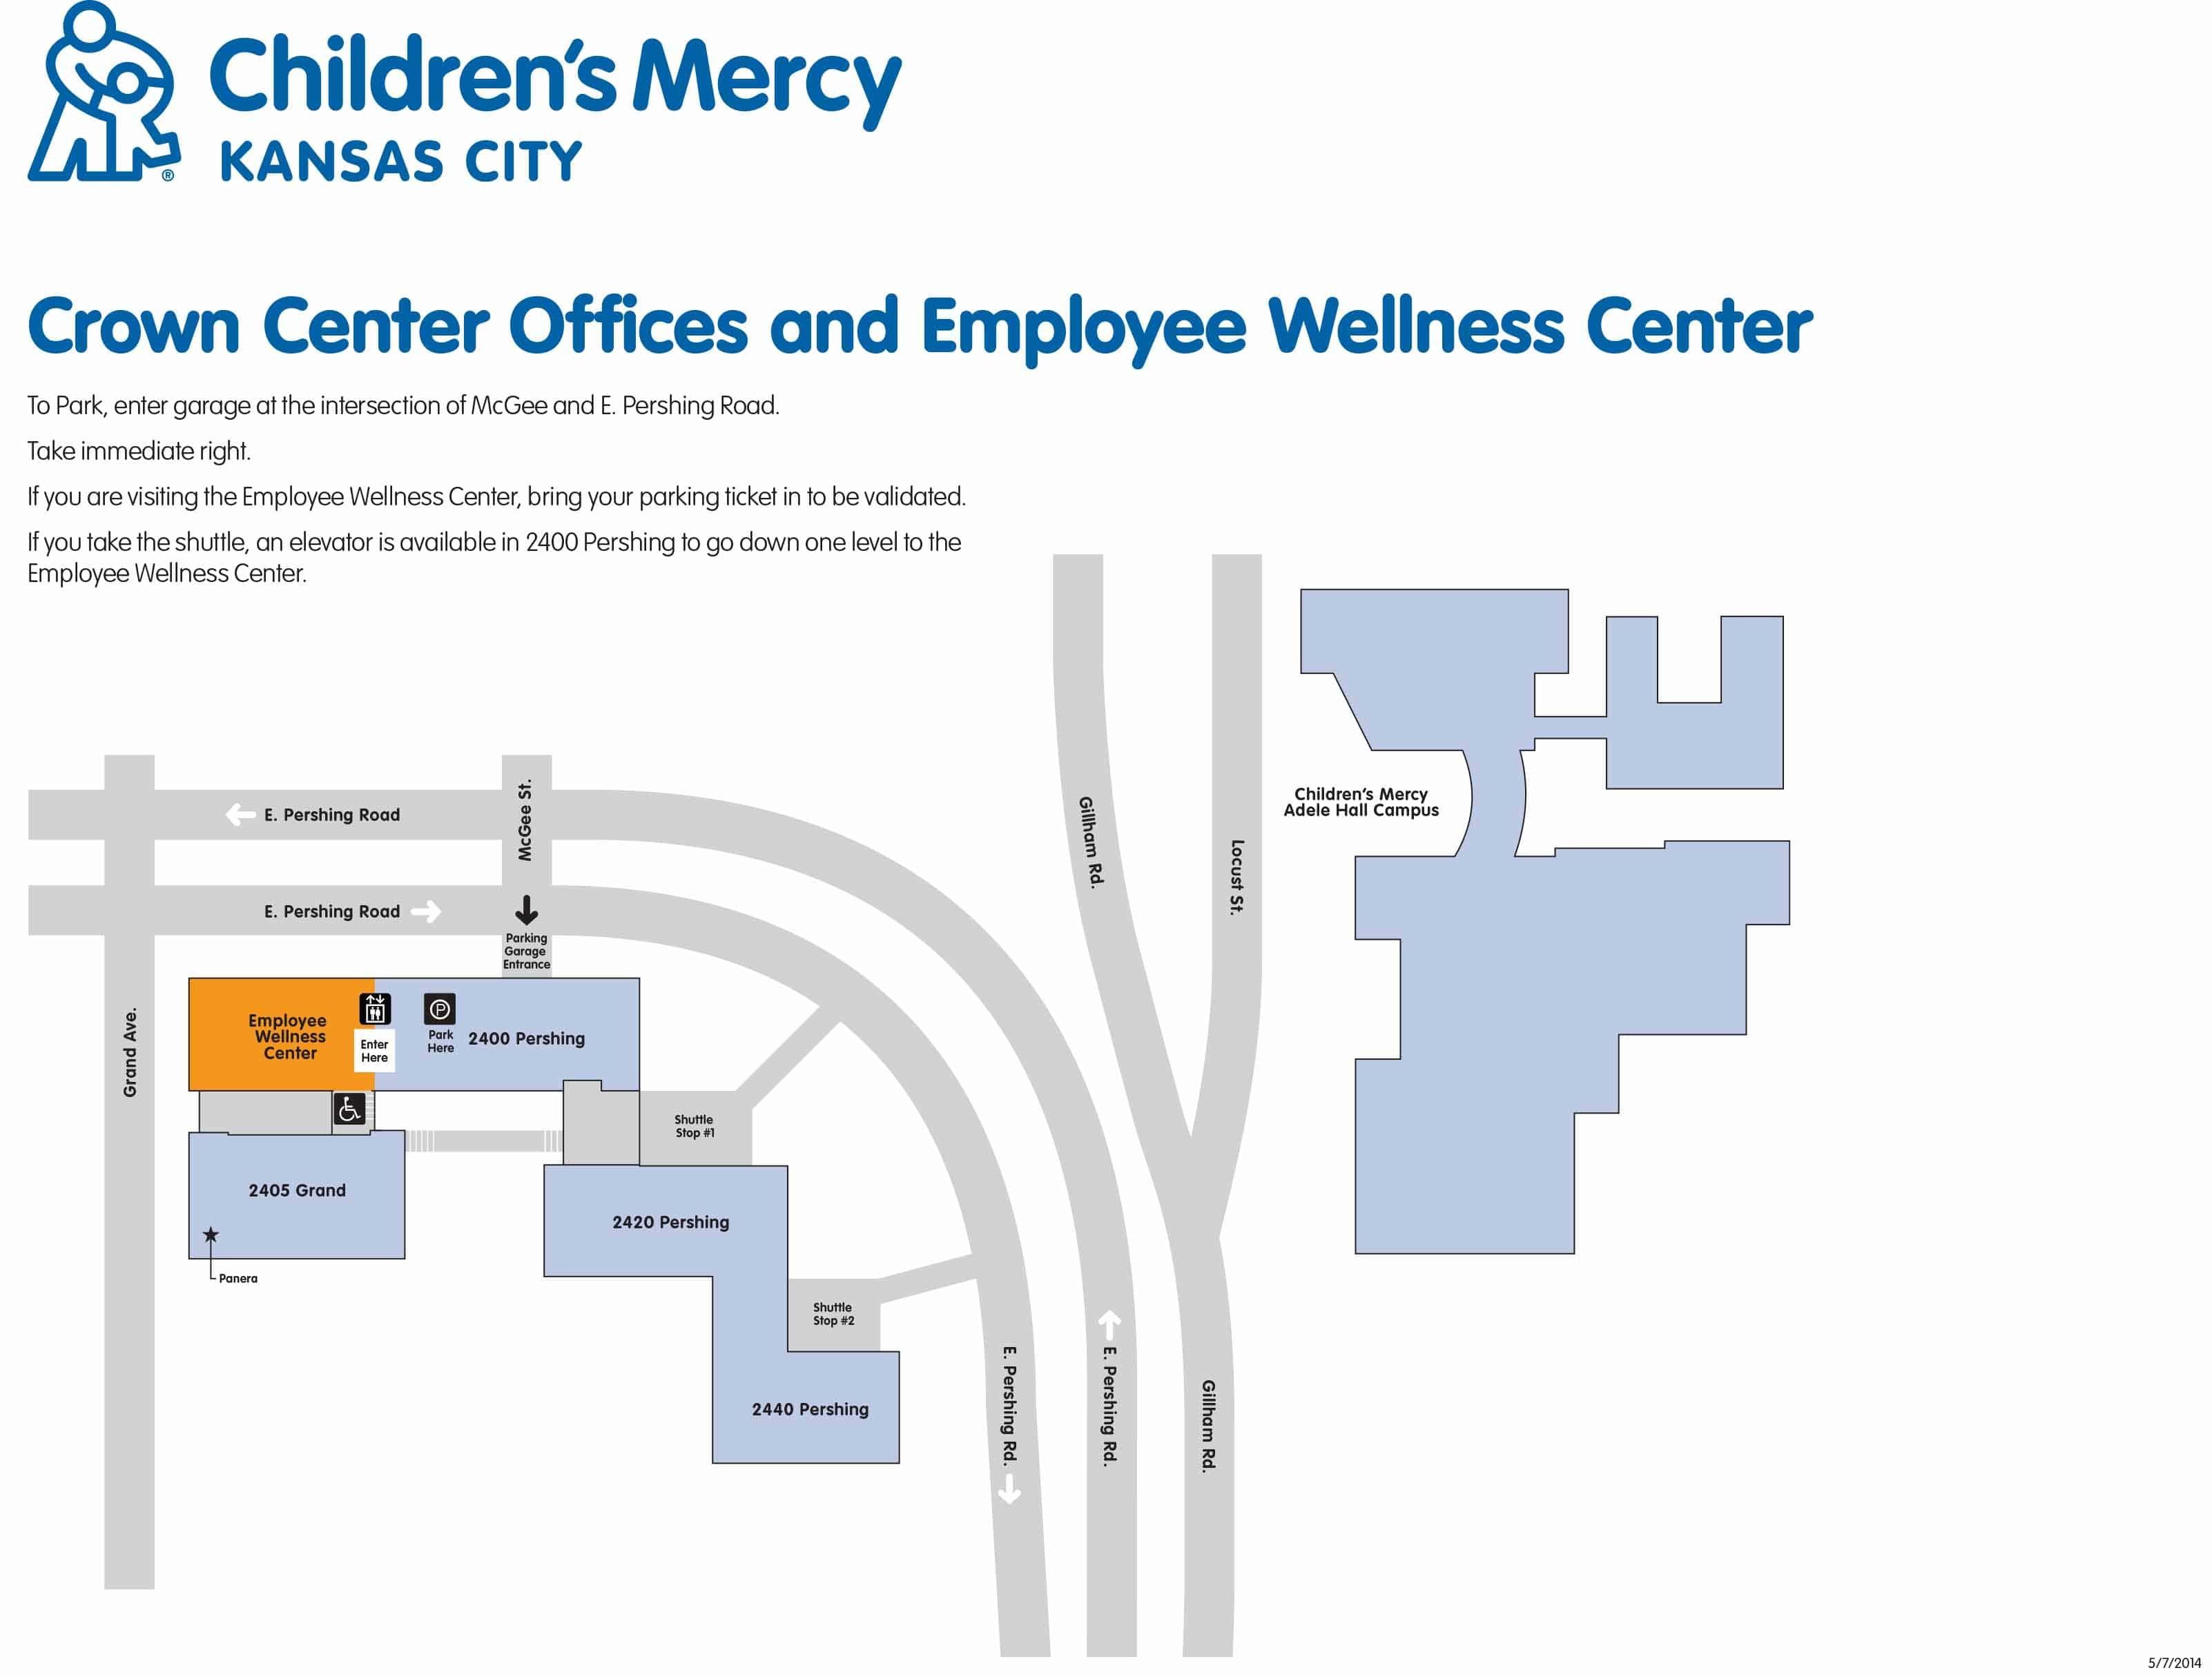 Appointments, Hours and Parking | Children's Mercy Kansas City